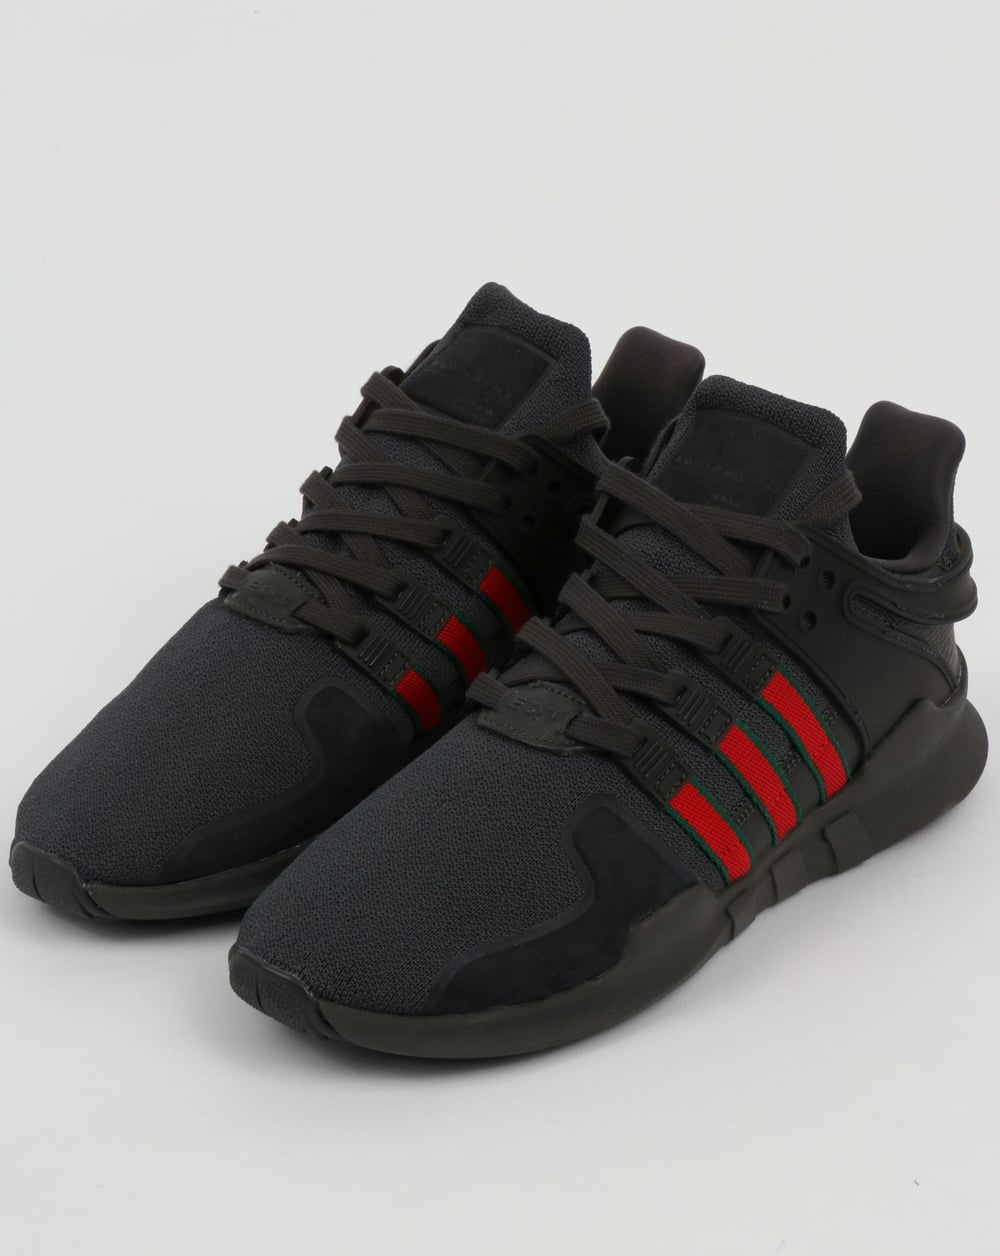 068731abb9fc adidas Trainers Adidas EQT Support ADV Trainers Black Scarlet Green